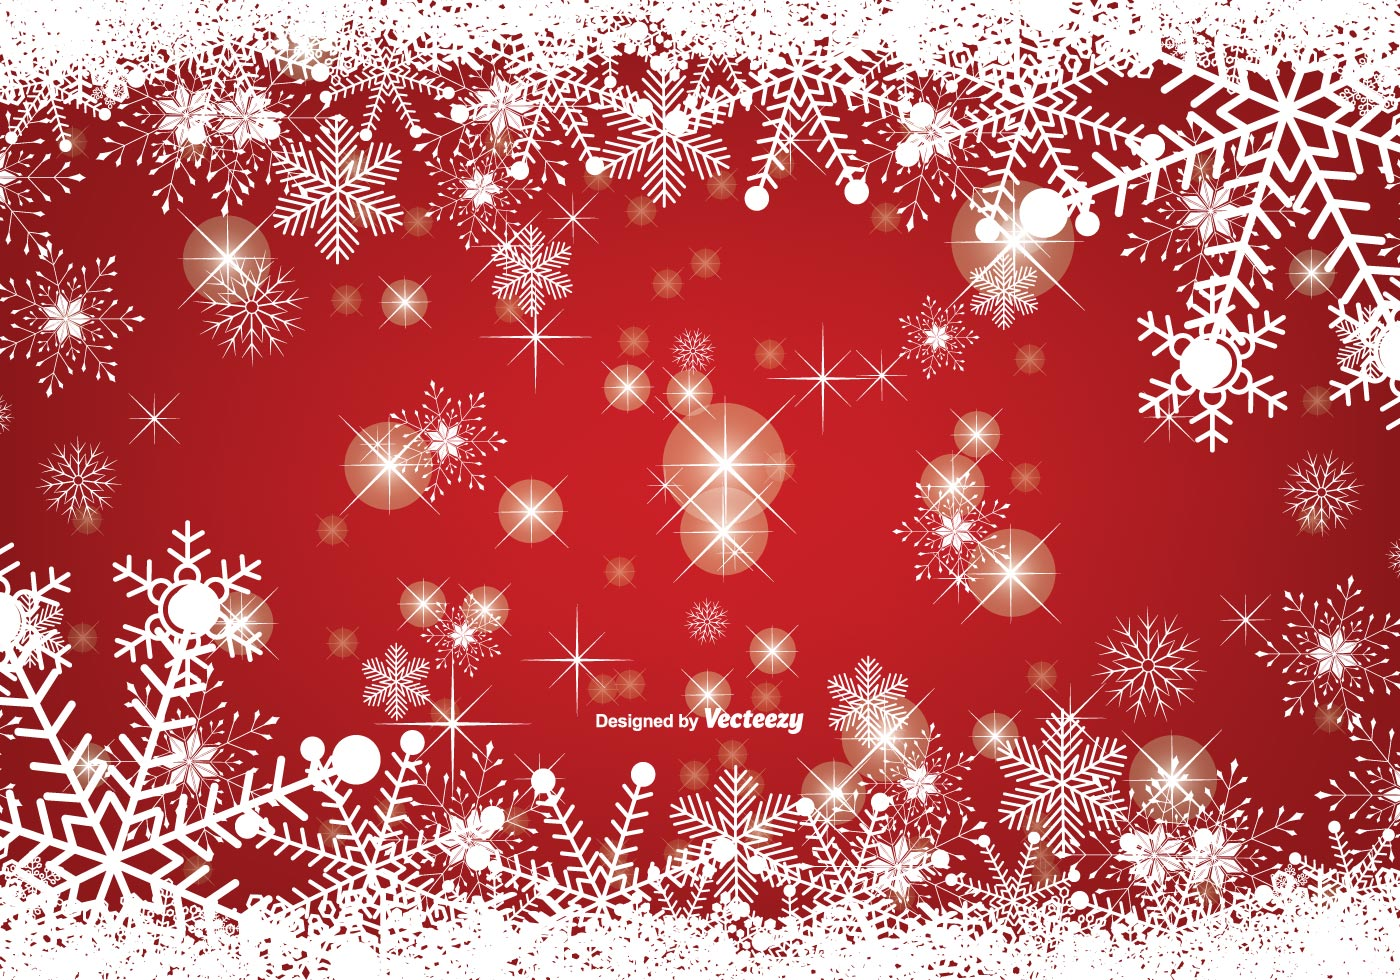 Red Christmas Background Free Vector Art - (24090 Free Downloads)